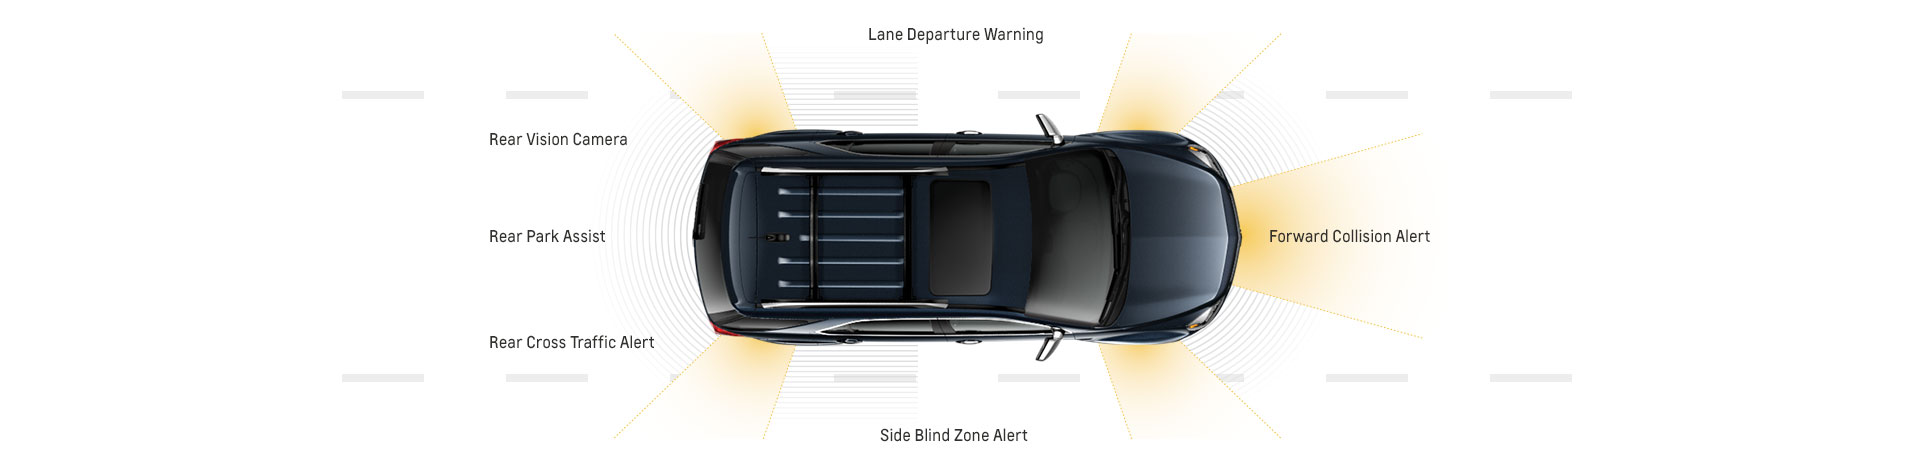 A diagram showing all of the high tech safety figures of the 2017 Traverse.